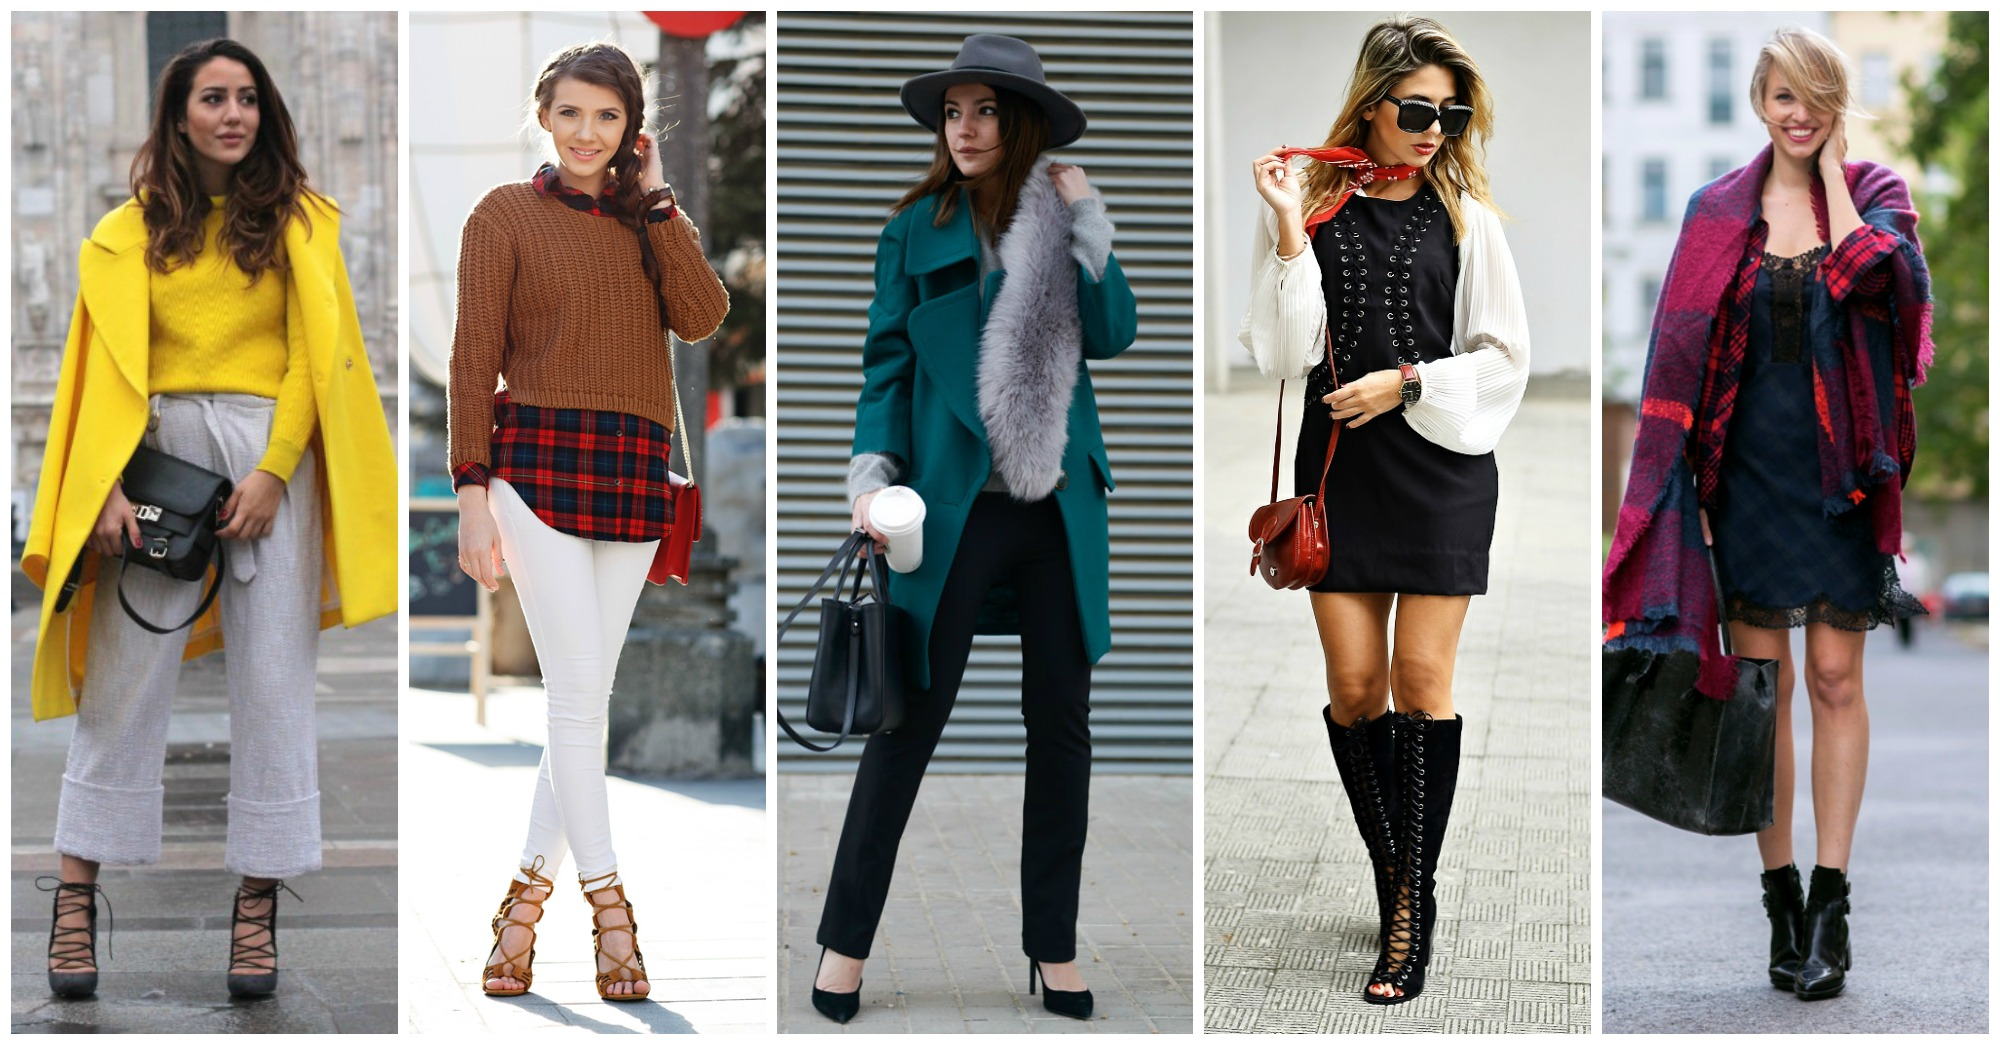 25 Ways to Dress Yourself With Fall Colors